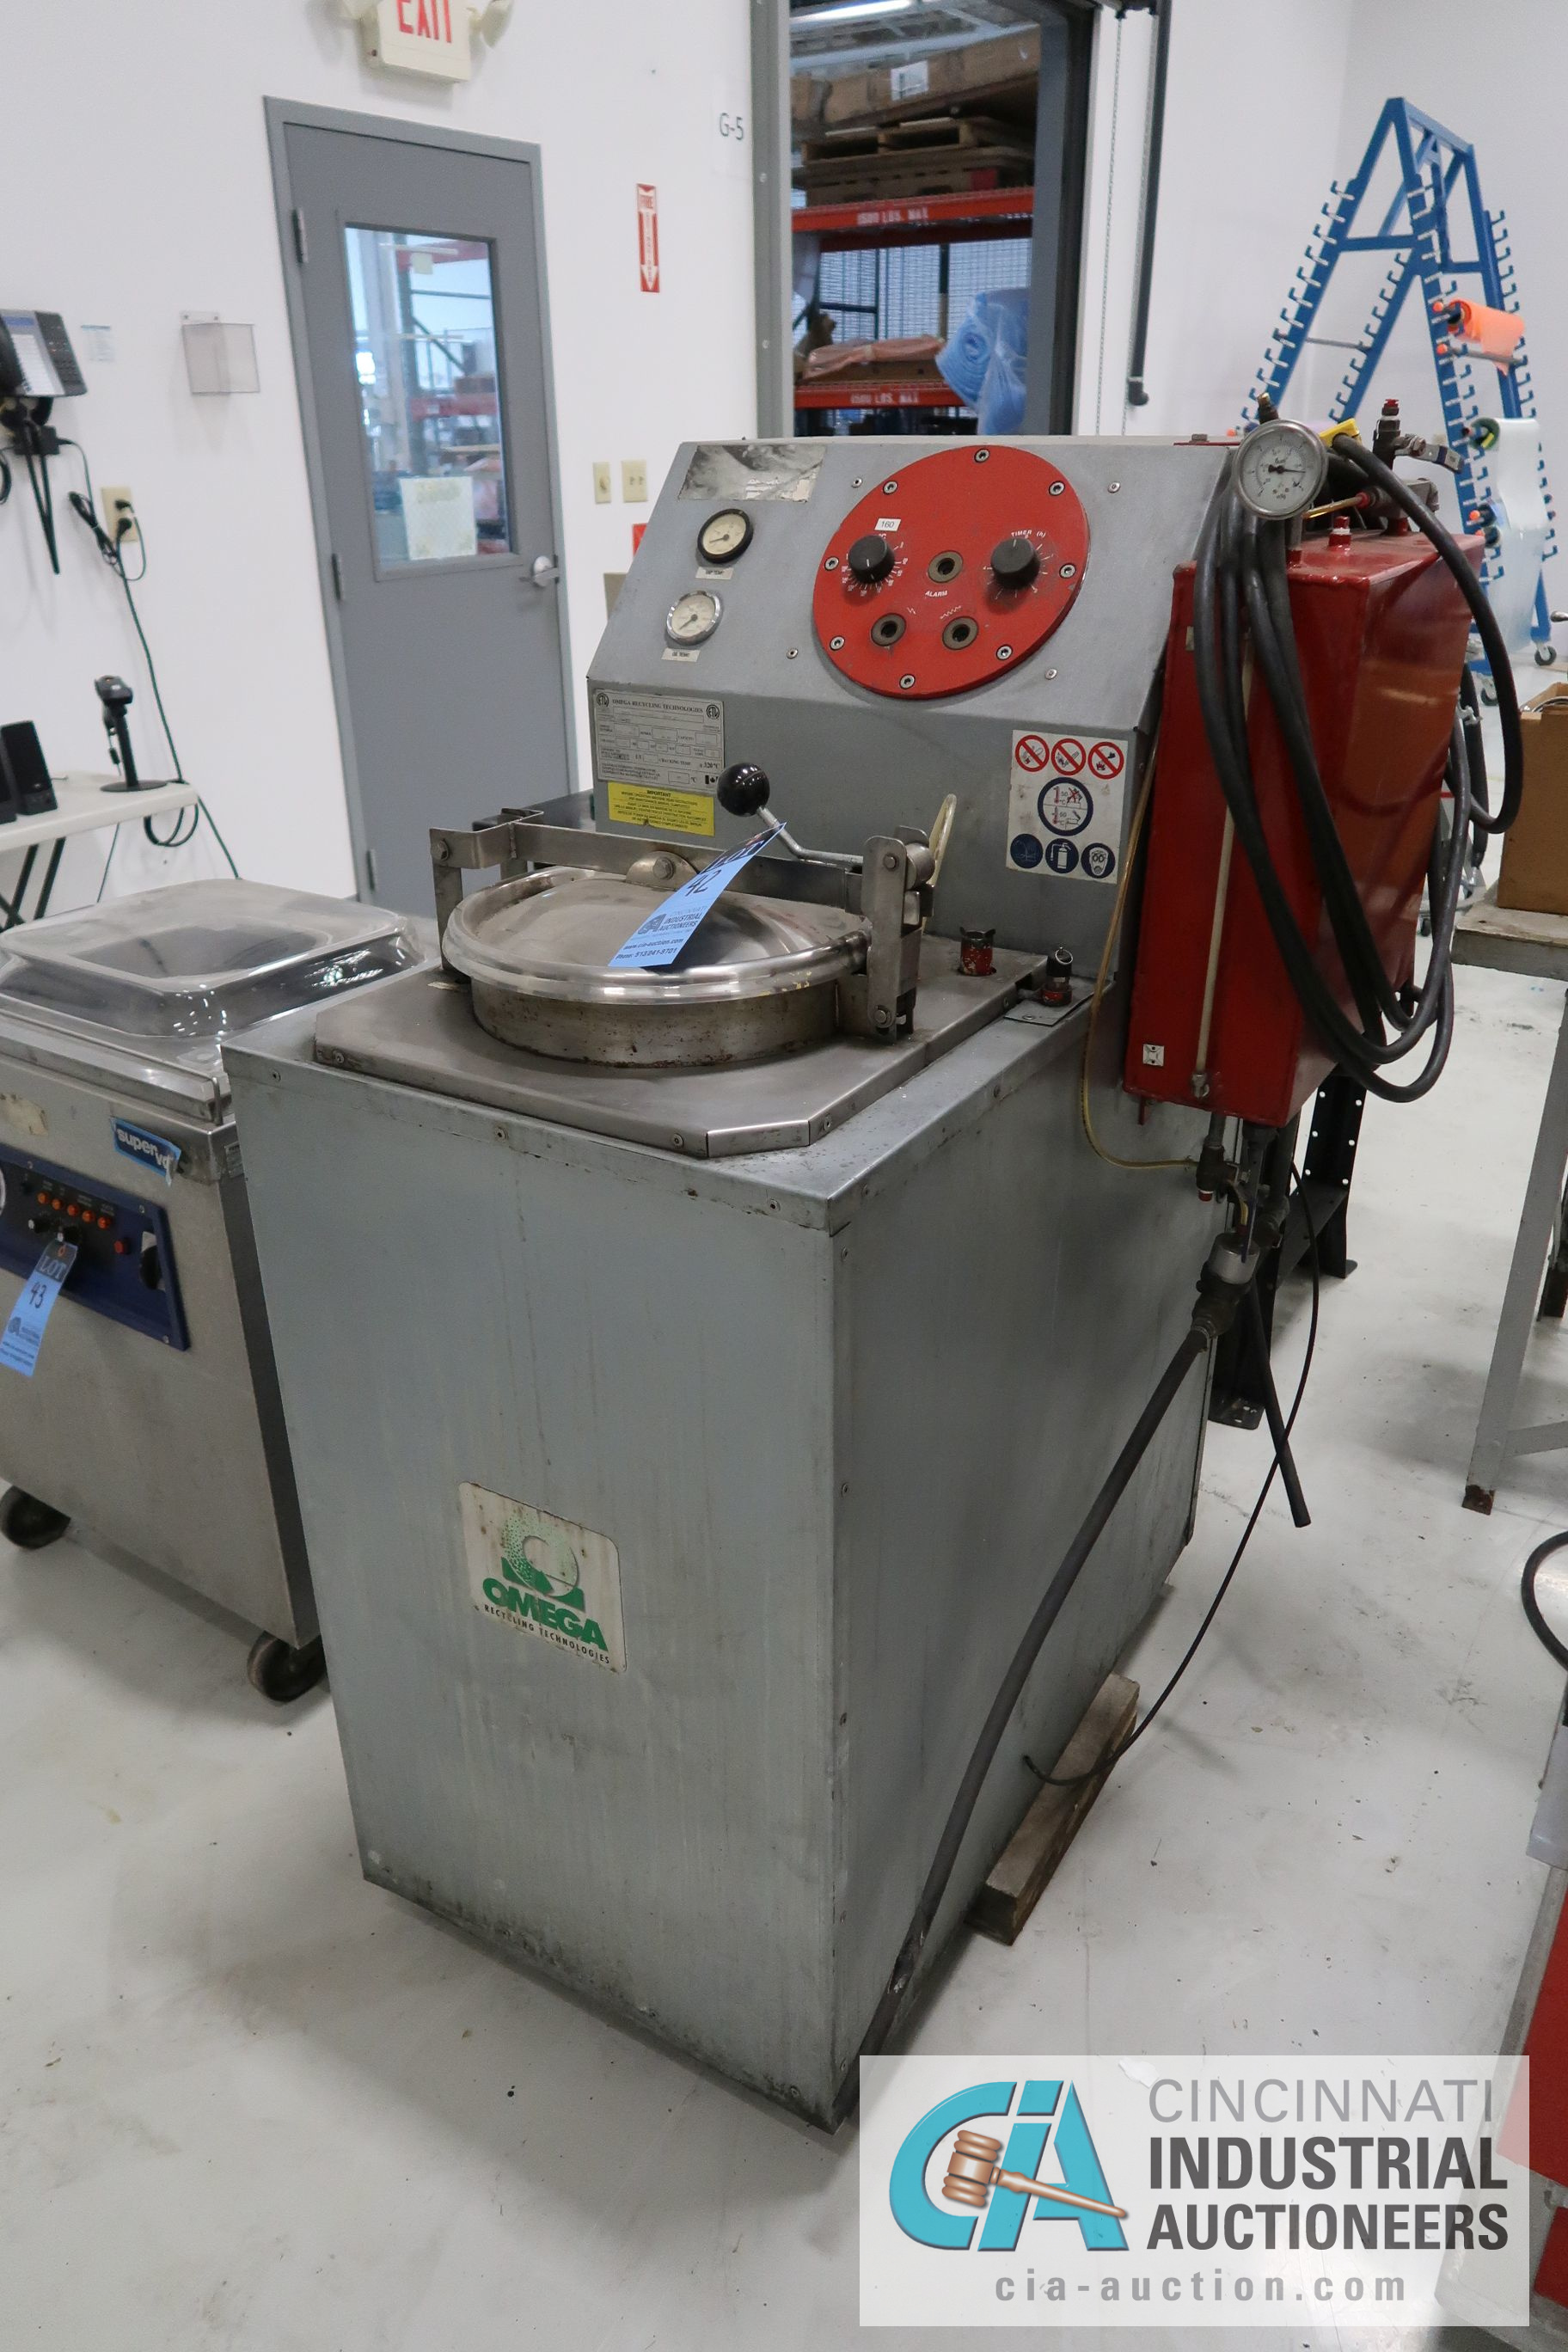 6 GAL. OMEGA RECYCLING TECHNOLIGES MODEL RS-6A SOLVENT RECOVERY UNIT; S/N 0304-1843VP